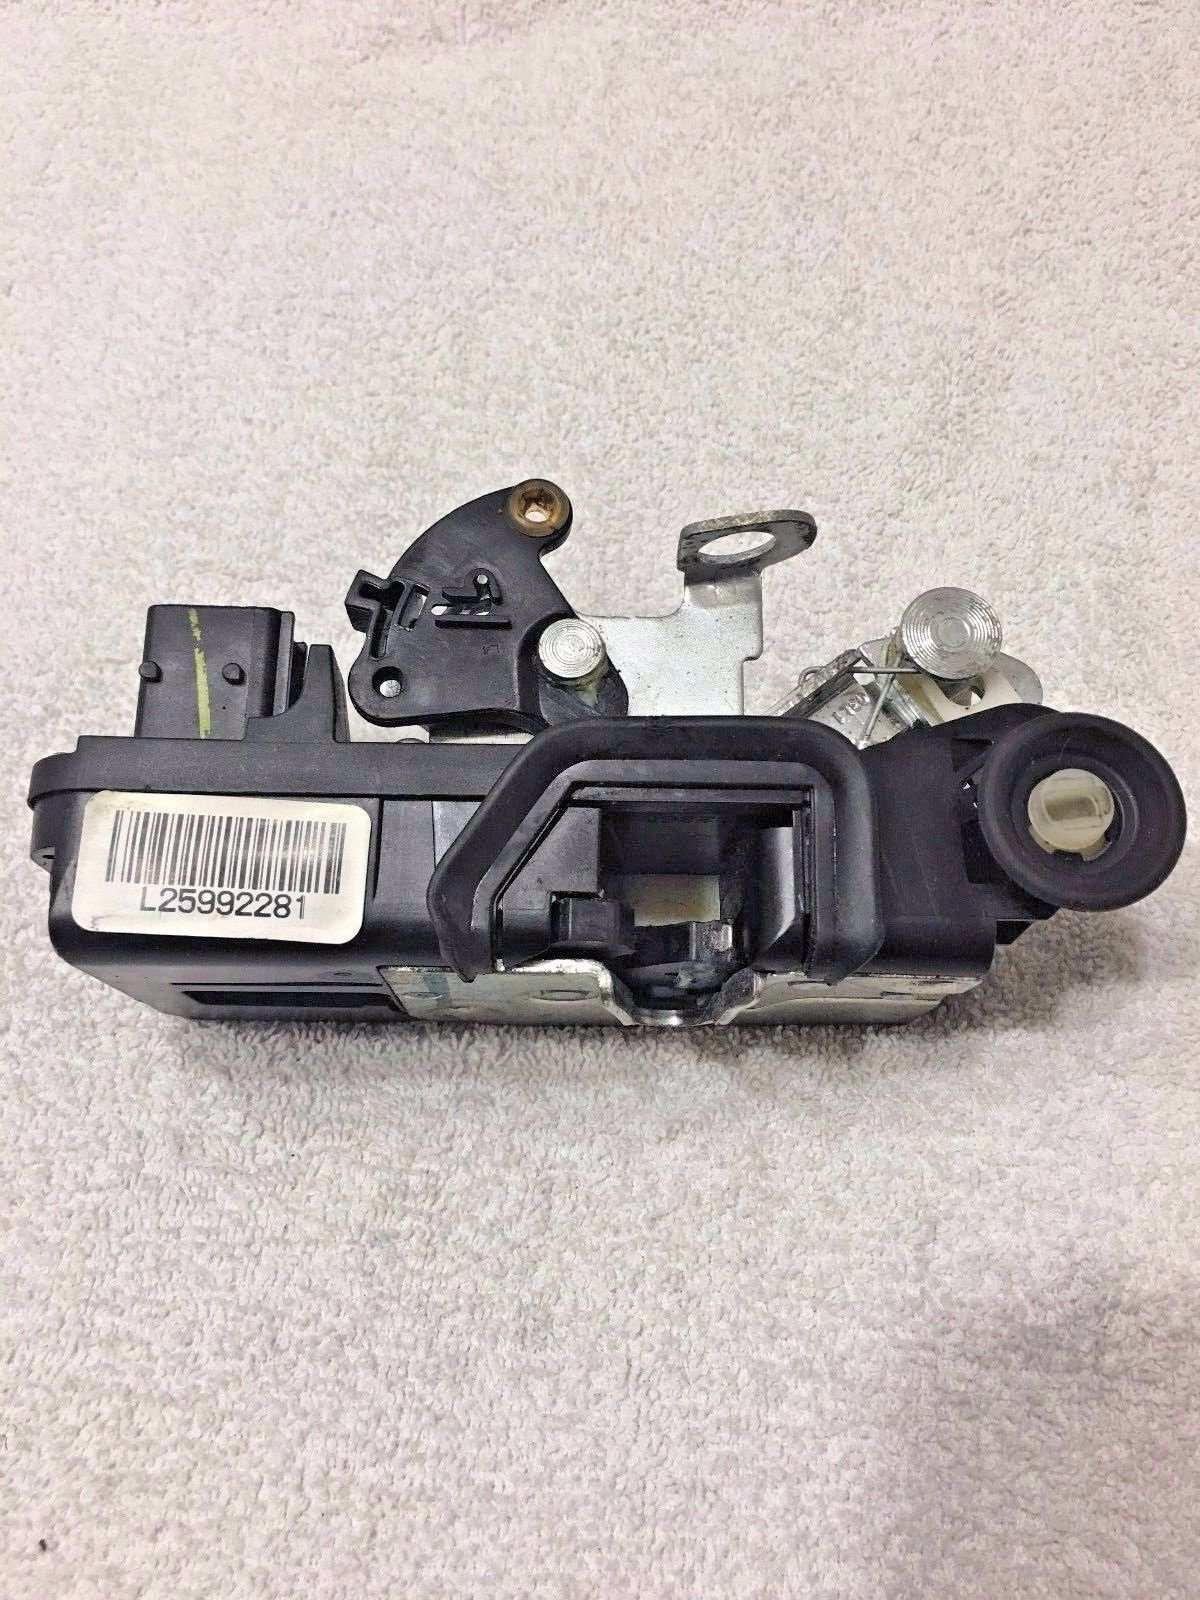 2002 Dodge Ram 1500 Door Lock Actuator Unique 2001 Dodge Dakota - 2002 Dodge Ram 1500 Trailer Wiring Diagram